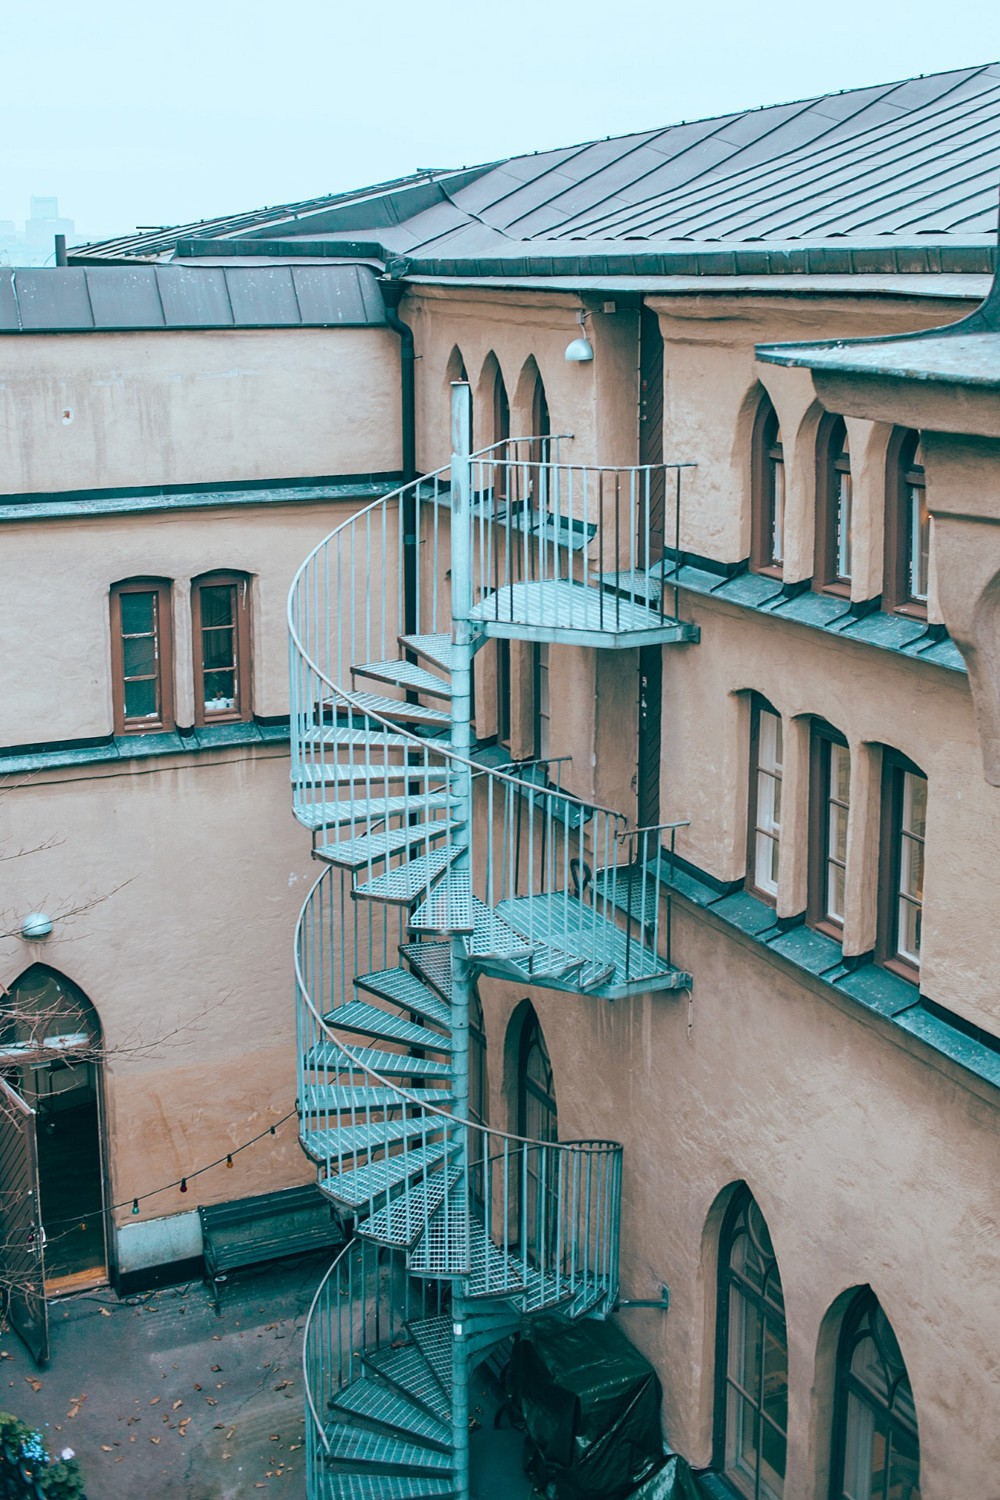 Patina spiral staircase on side of European building